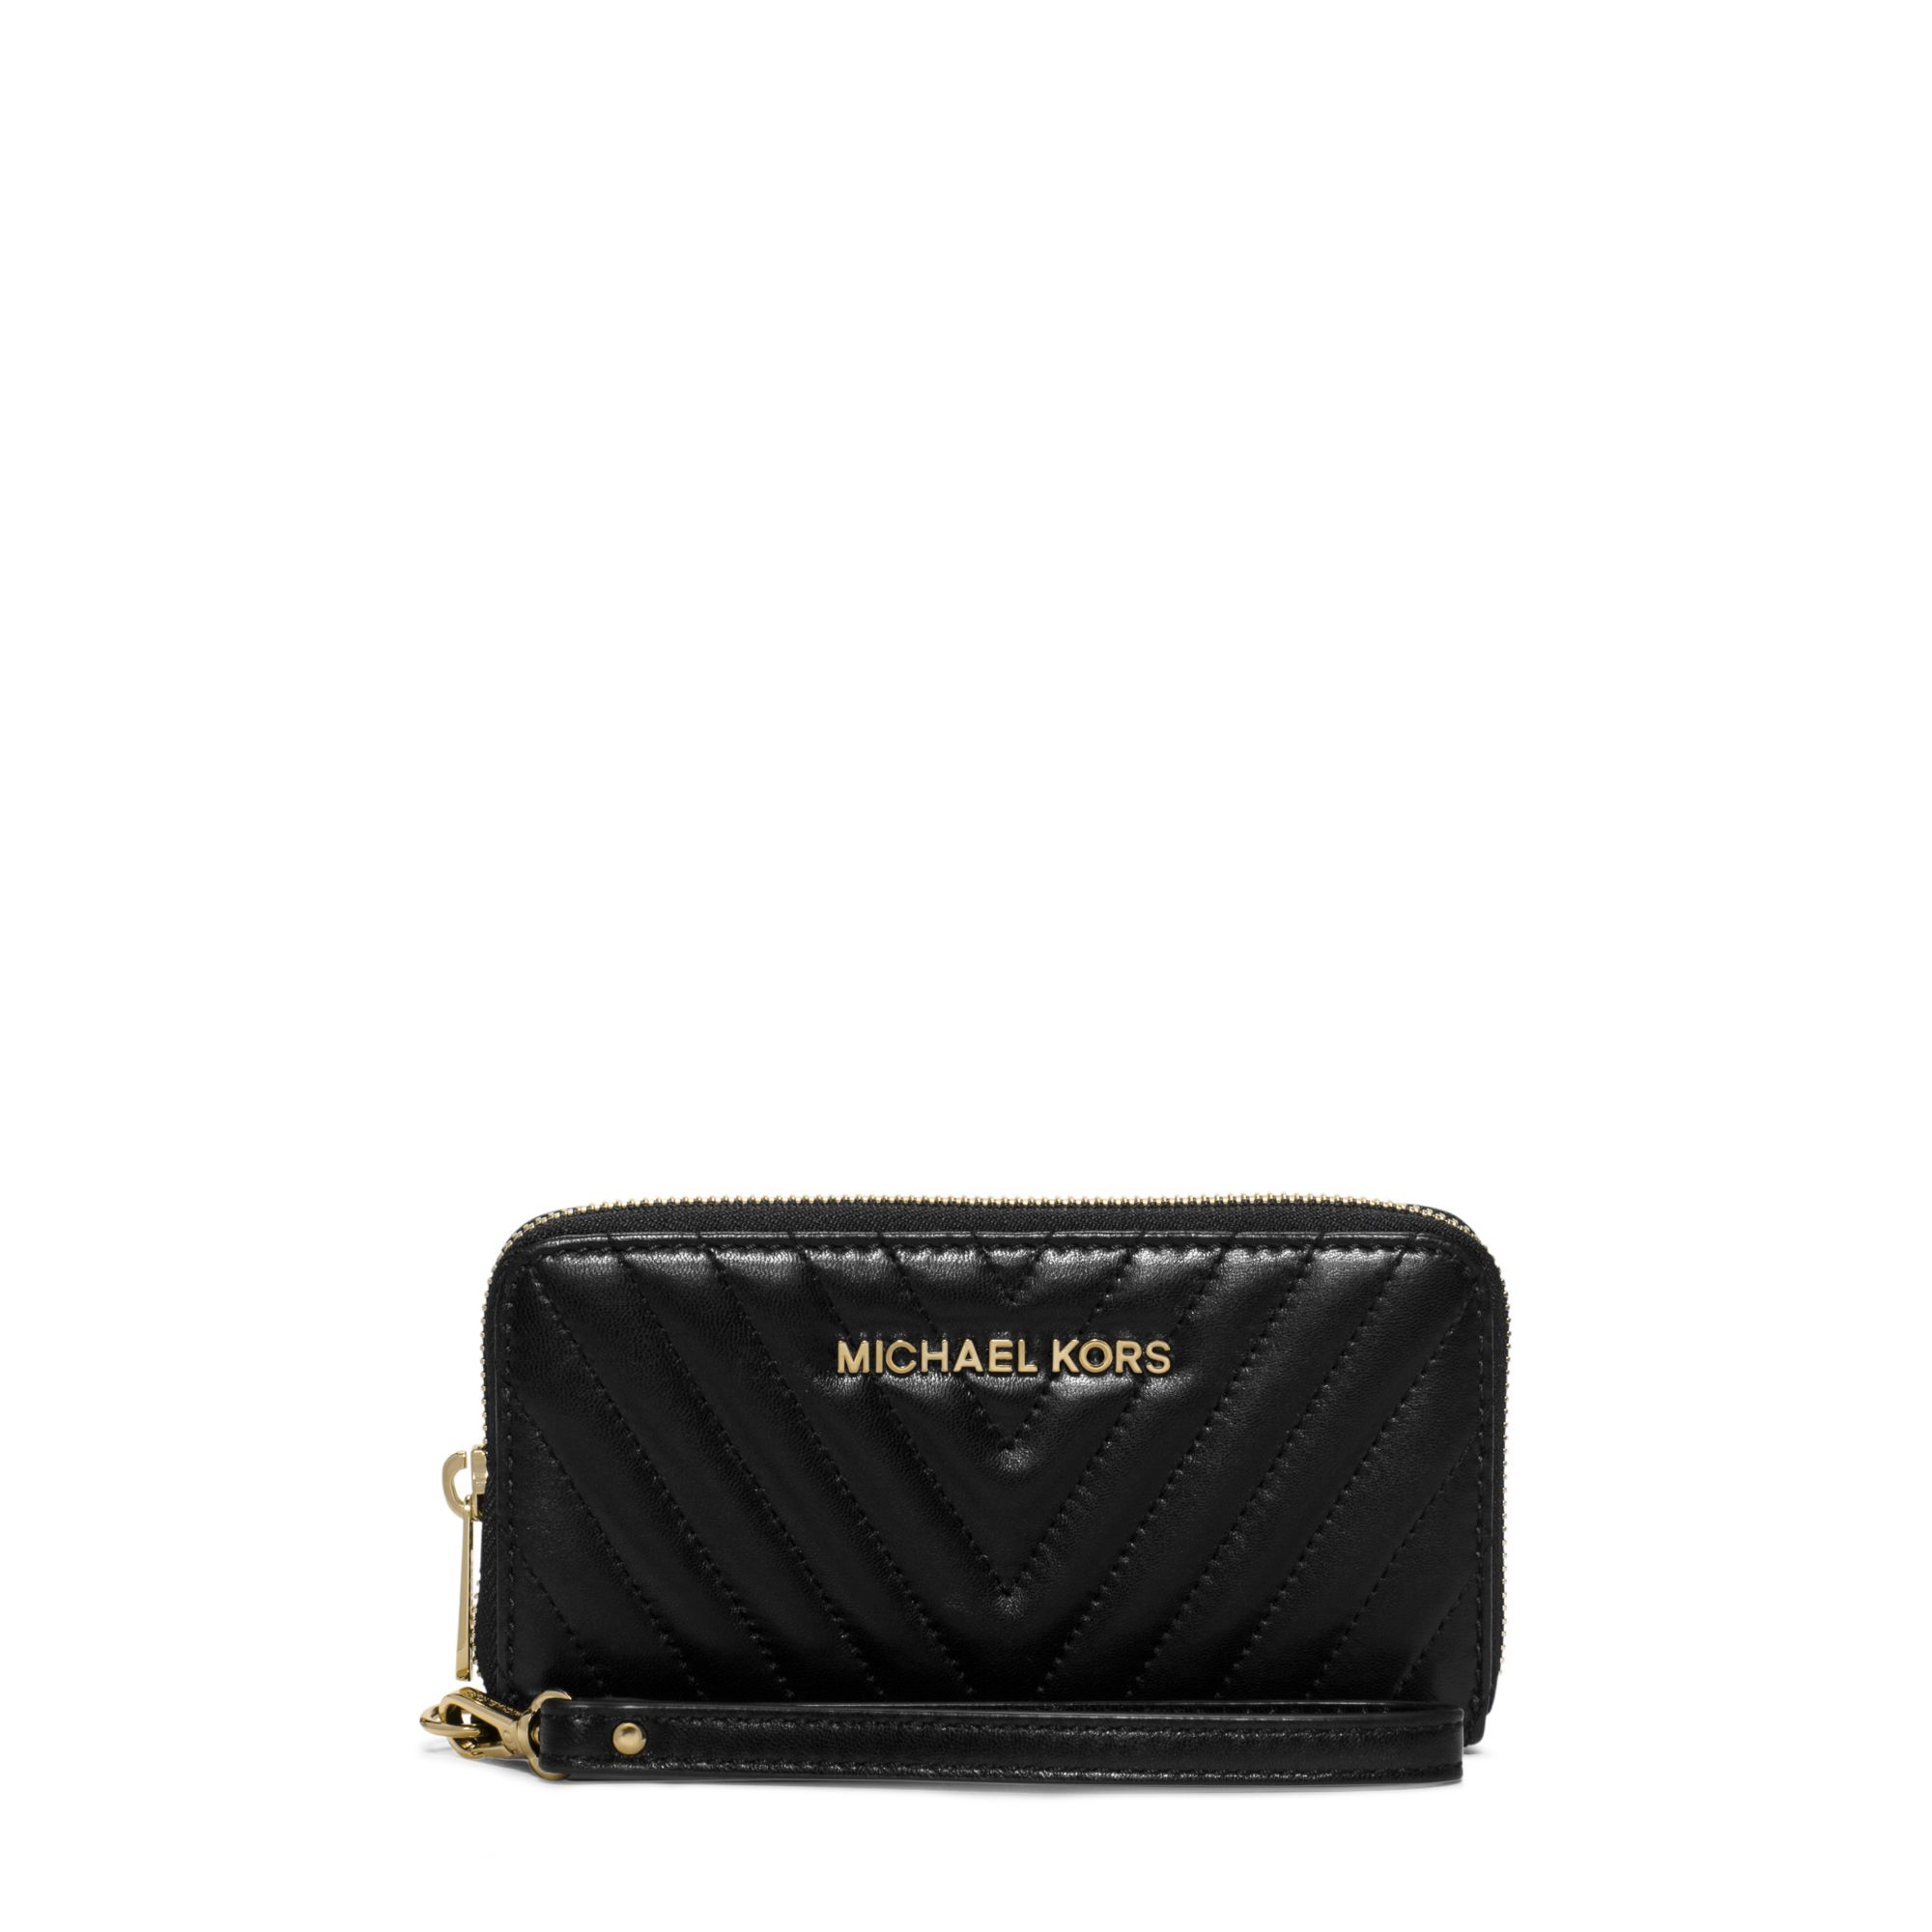 3efd350fe9b6 Michael Kors Susannah Large Chevron-quilted Smartphone Wristlet in ...